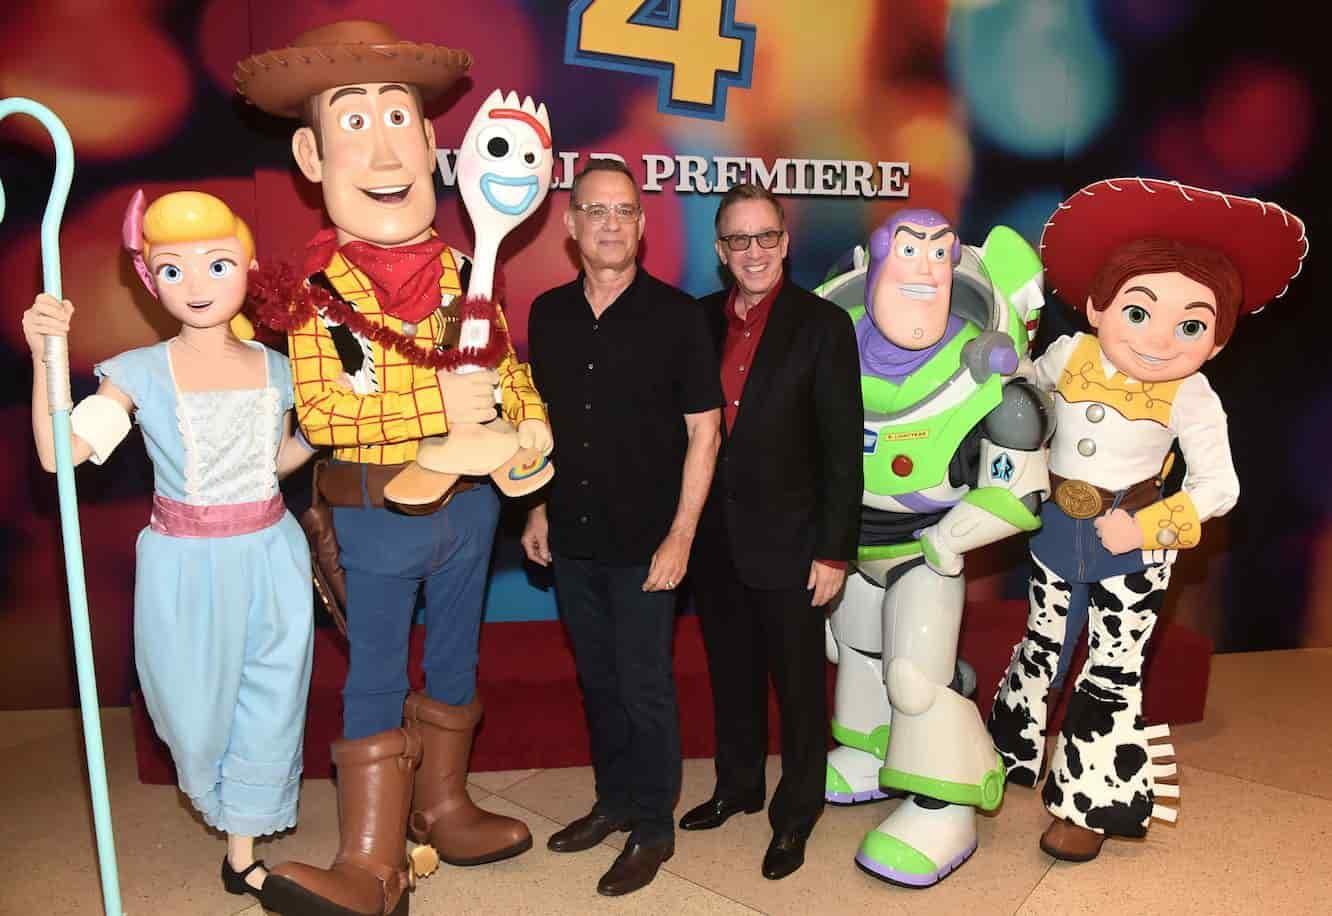 Estas son las primeras reacciones de Toy Story 4 tras premiere global